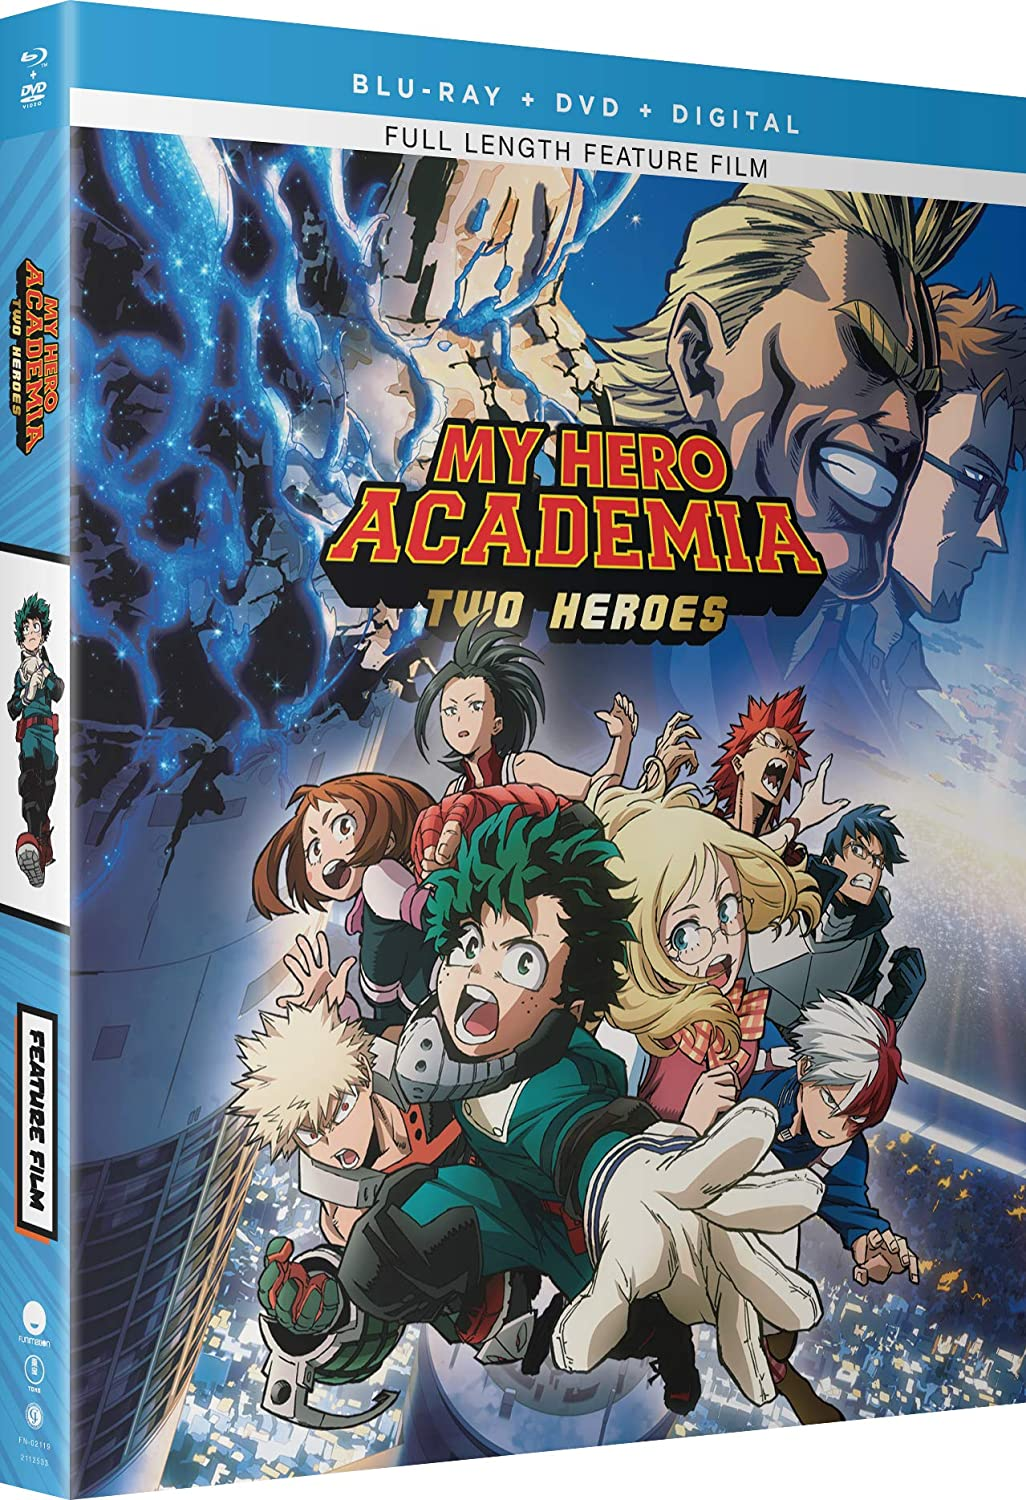 My Hero Academia Two Heroes Blu Ray Blu Ray Christopher R Sabat Justin Briner Luci Christian Clifford Chapin Movies Tv